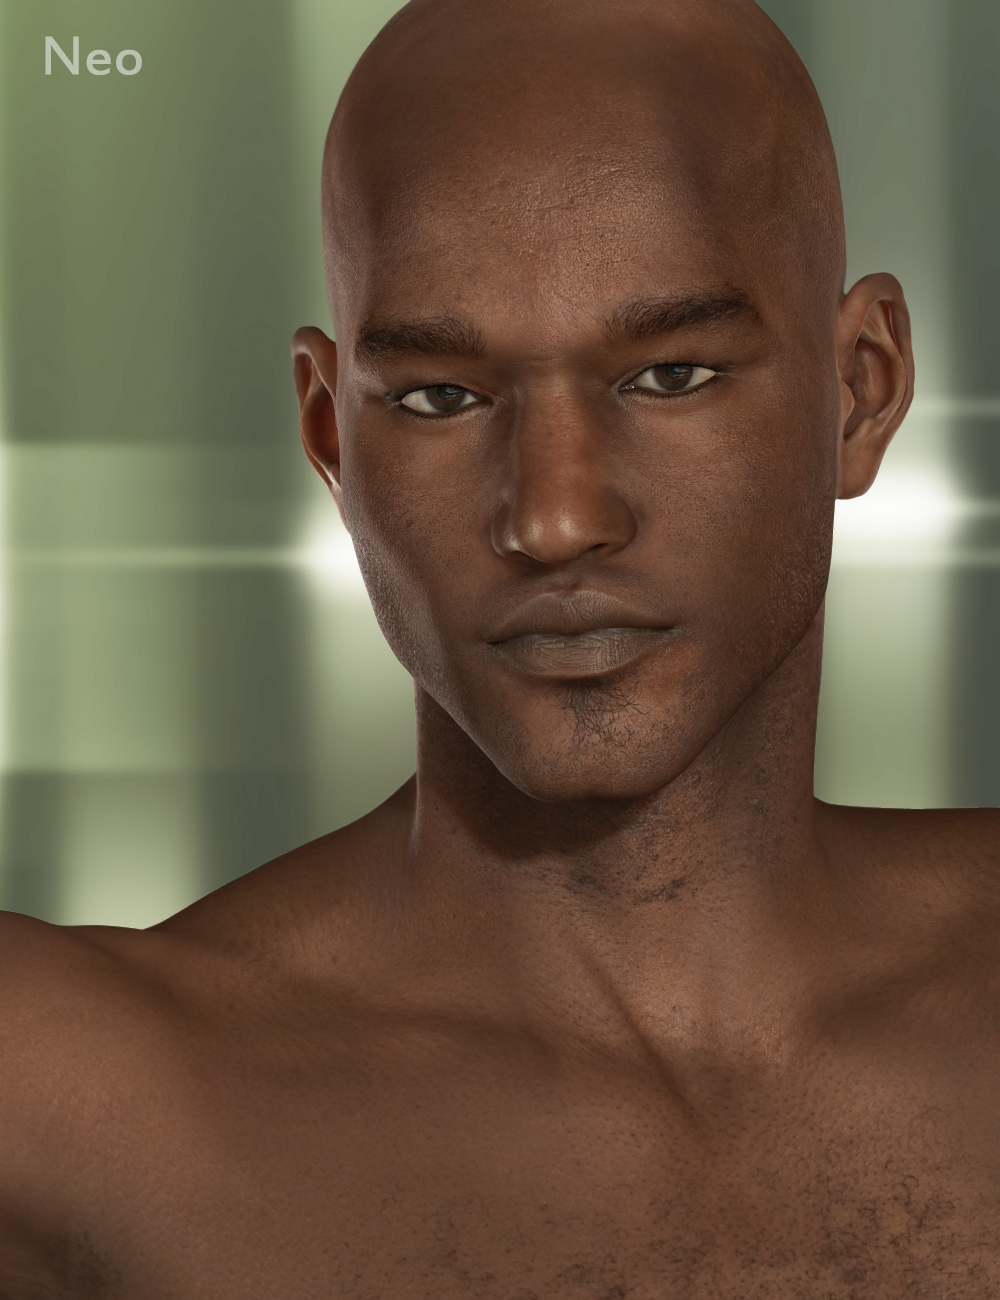 Neo for David 5 by: , 3D Models by Daz 3D